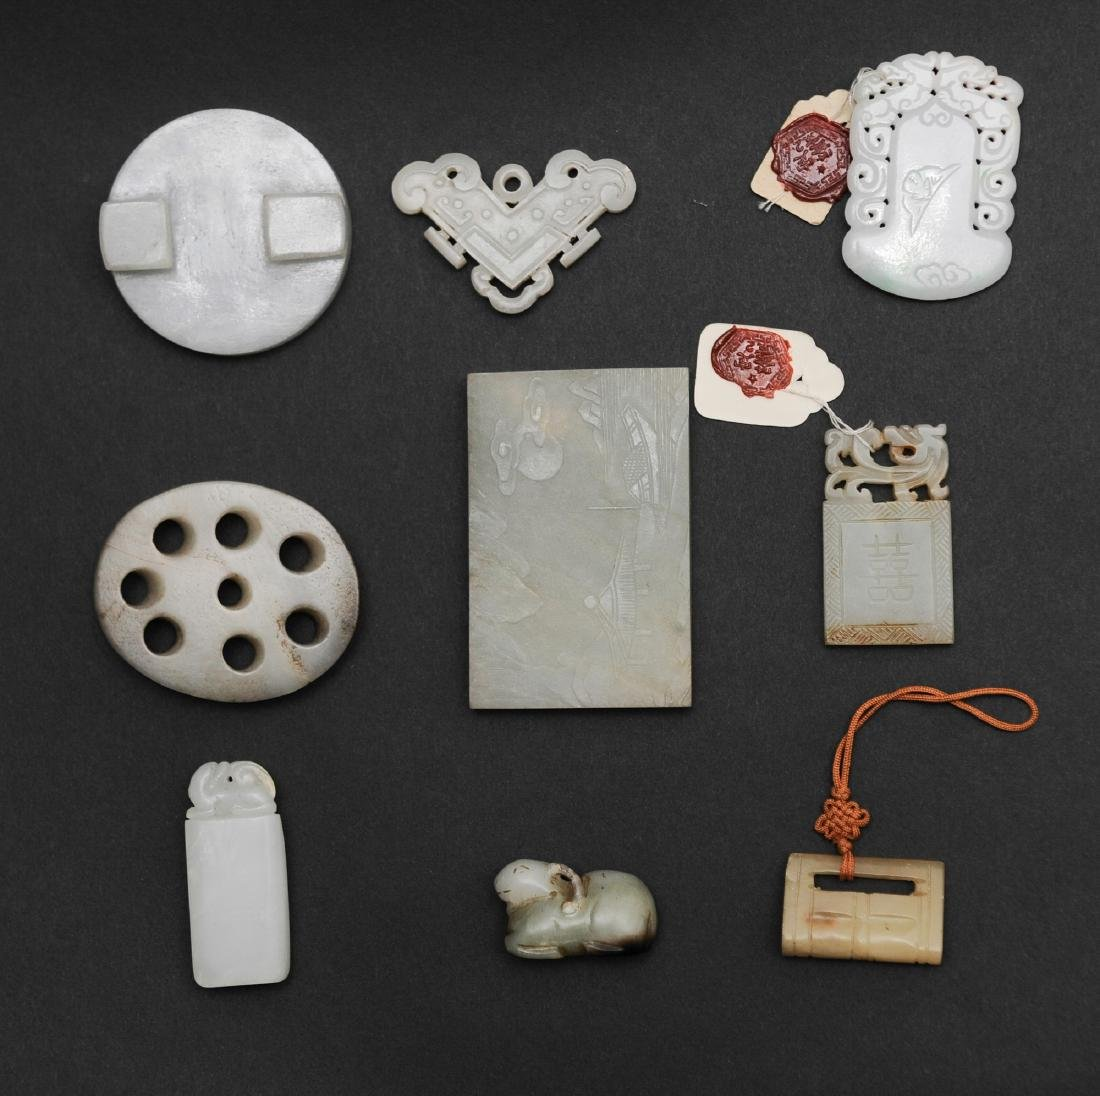 9 Chinese Jade & Jadeite Objects, 18 - 19th C - 2